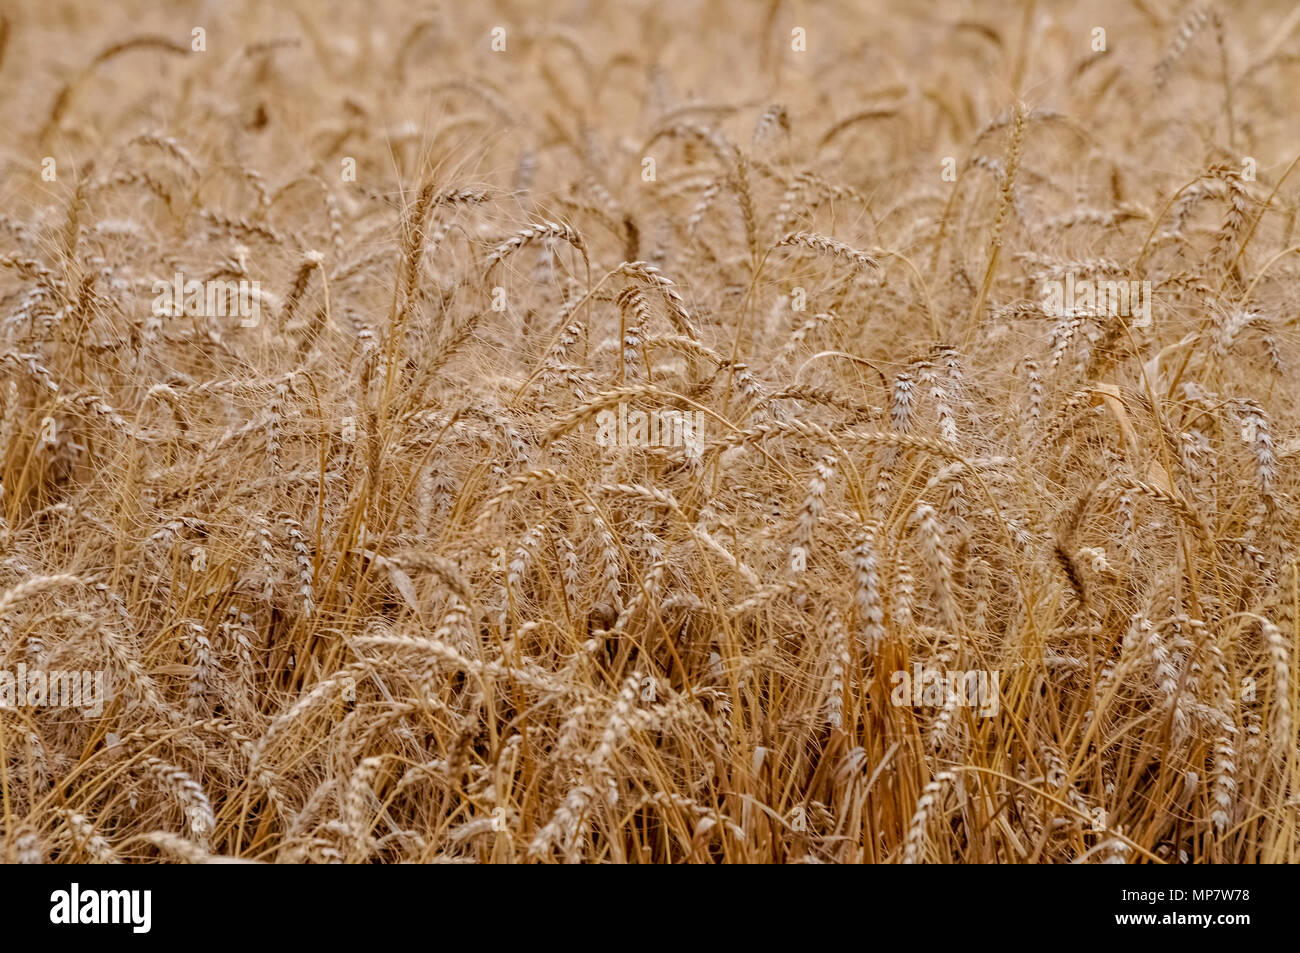 Ripe, Golden wheat stalks in a field before harvest Stock Photo